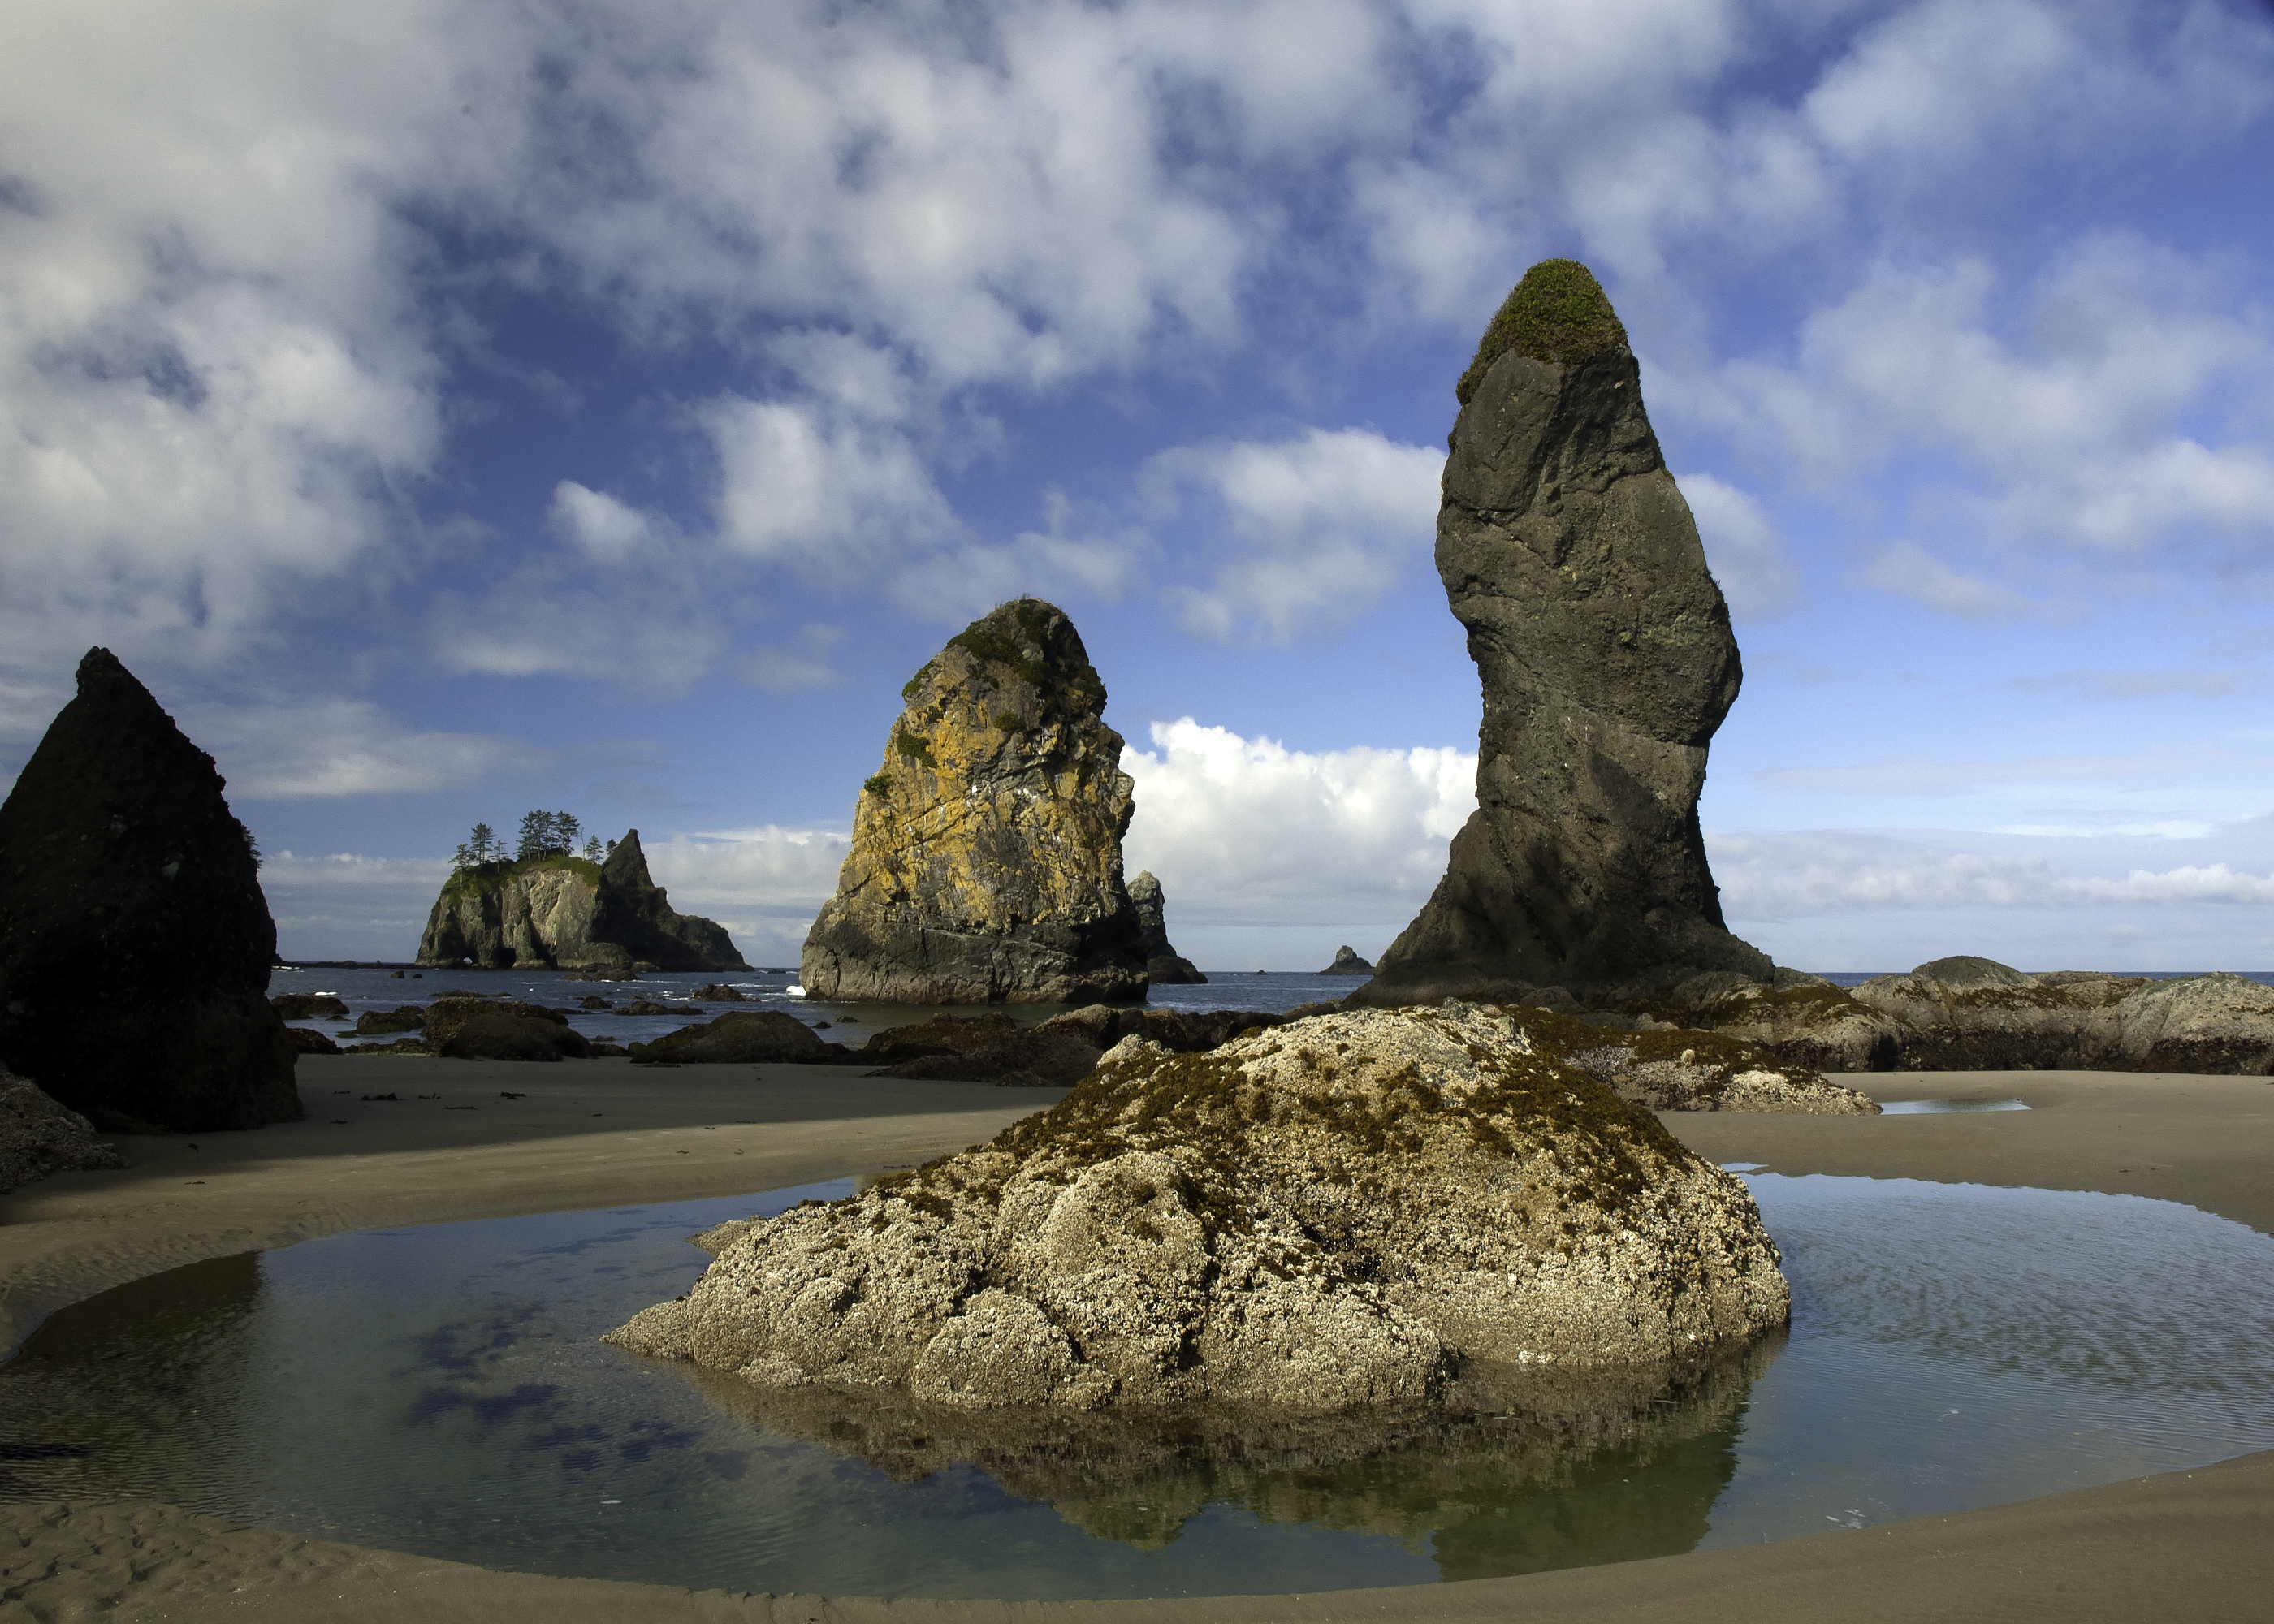 Sea Stacks on Shi Shi Beach